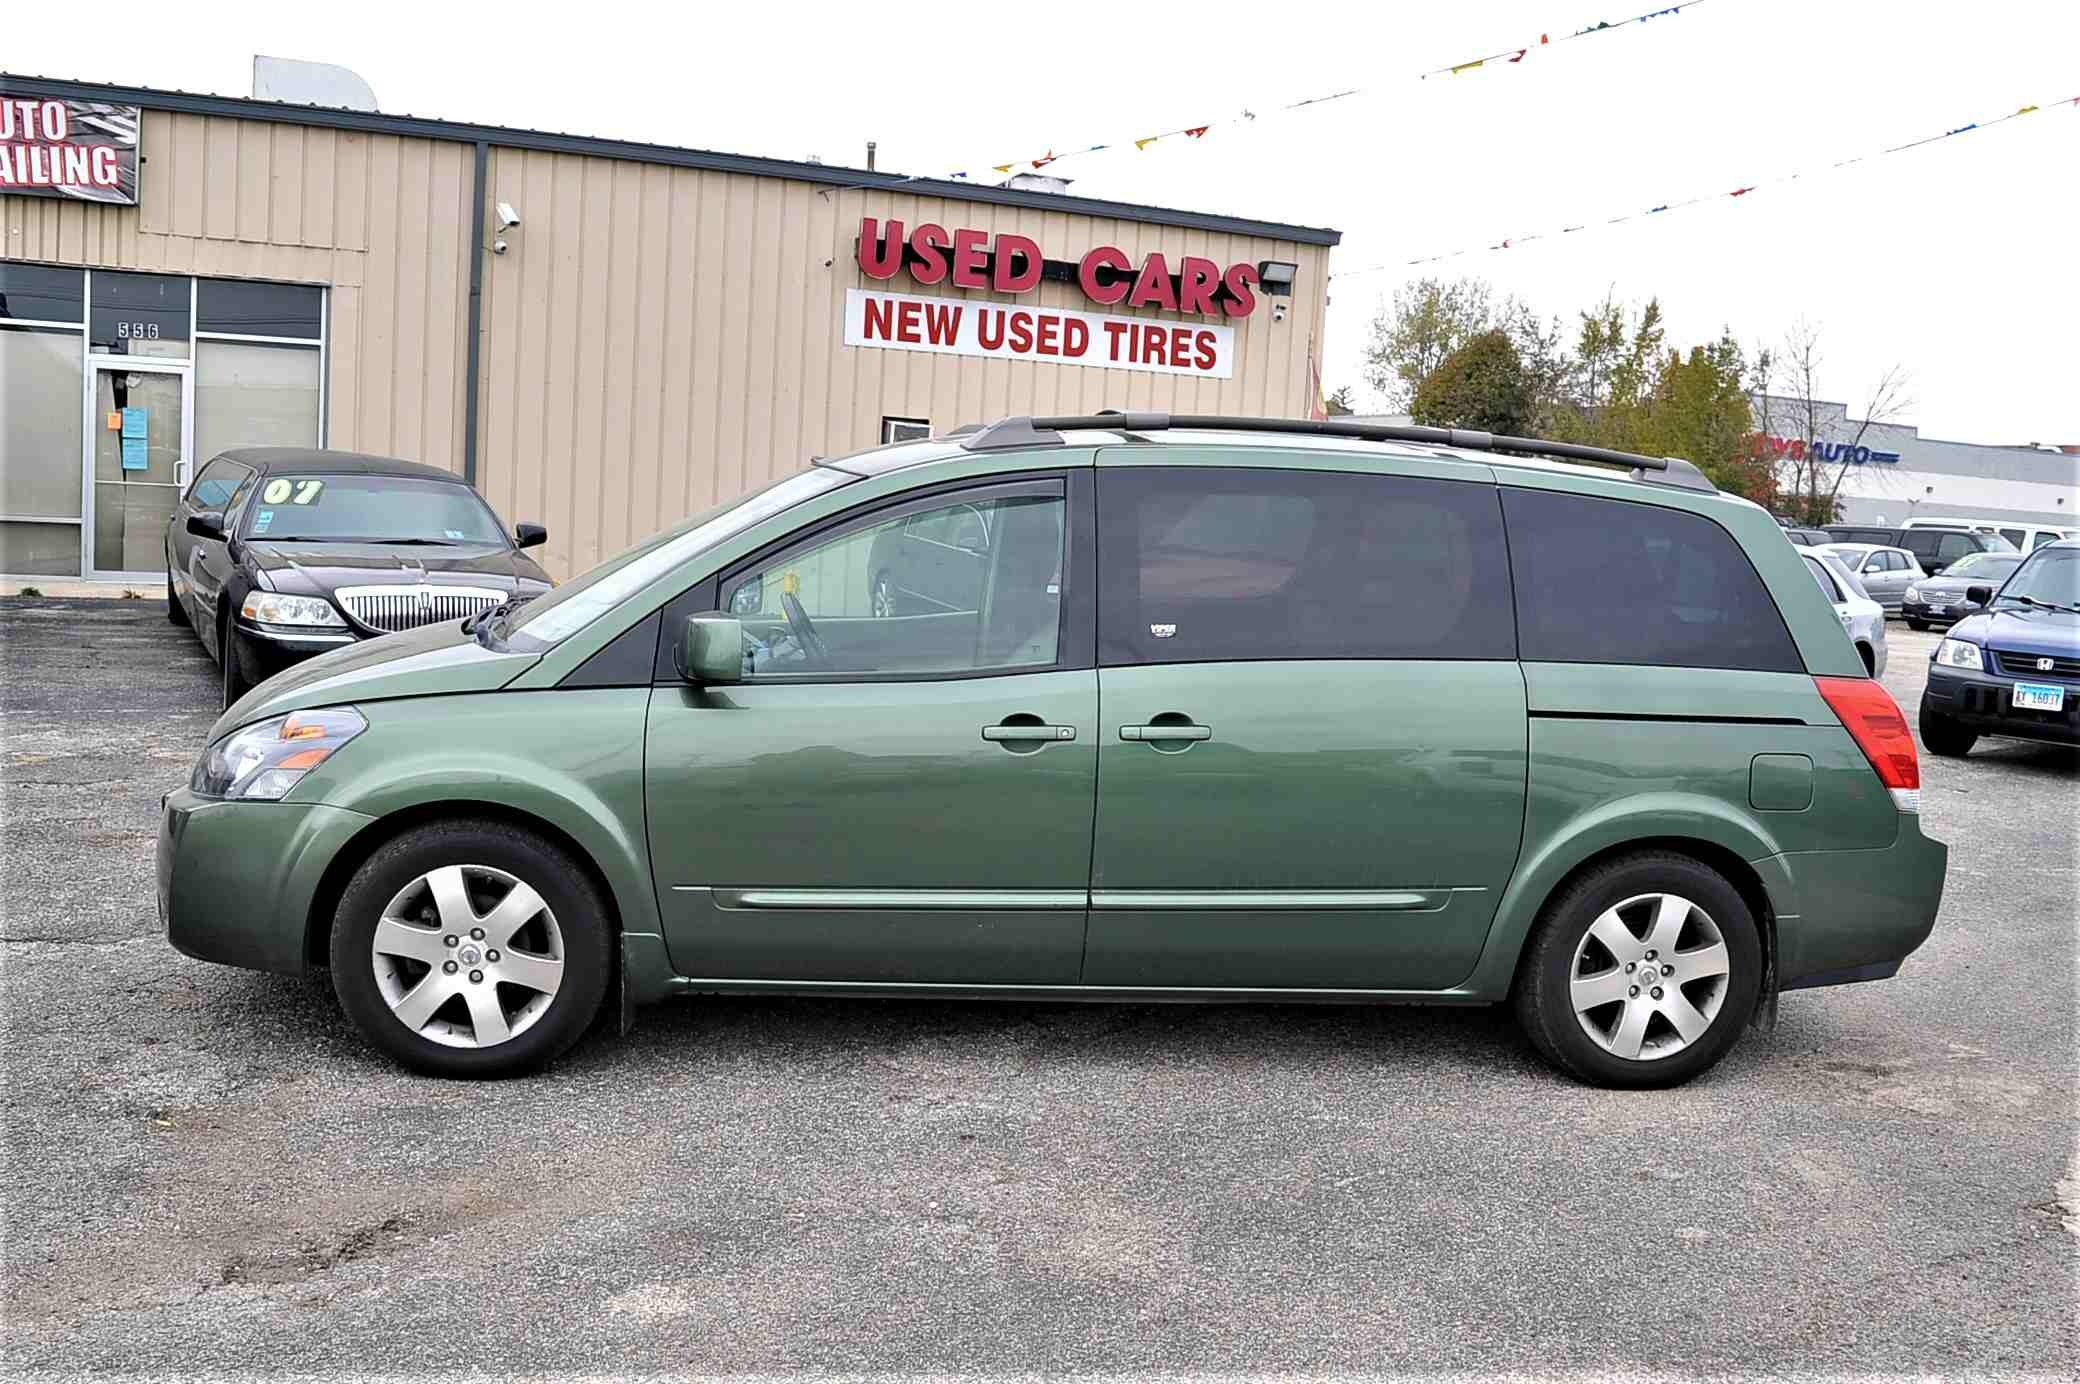 2004 Nissan Quest SE Green Used Minivan Sale Buffalo Grove Deerfield Fox Lake Antioch